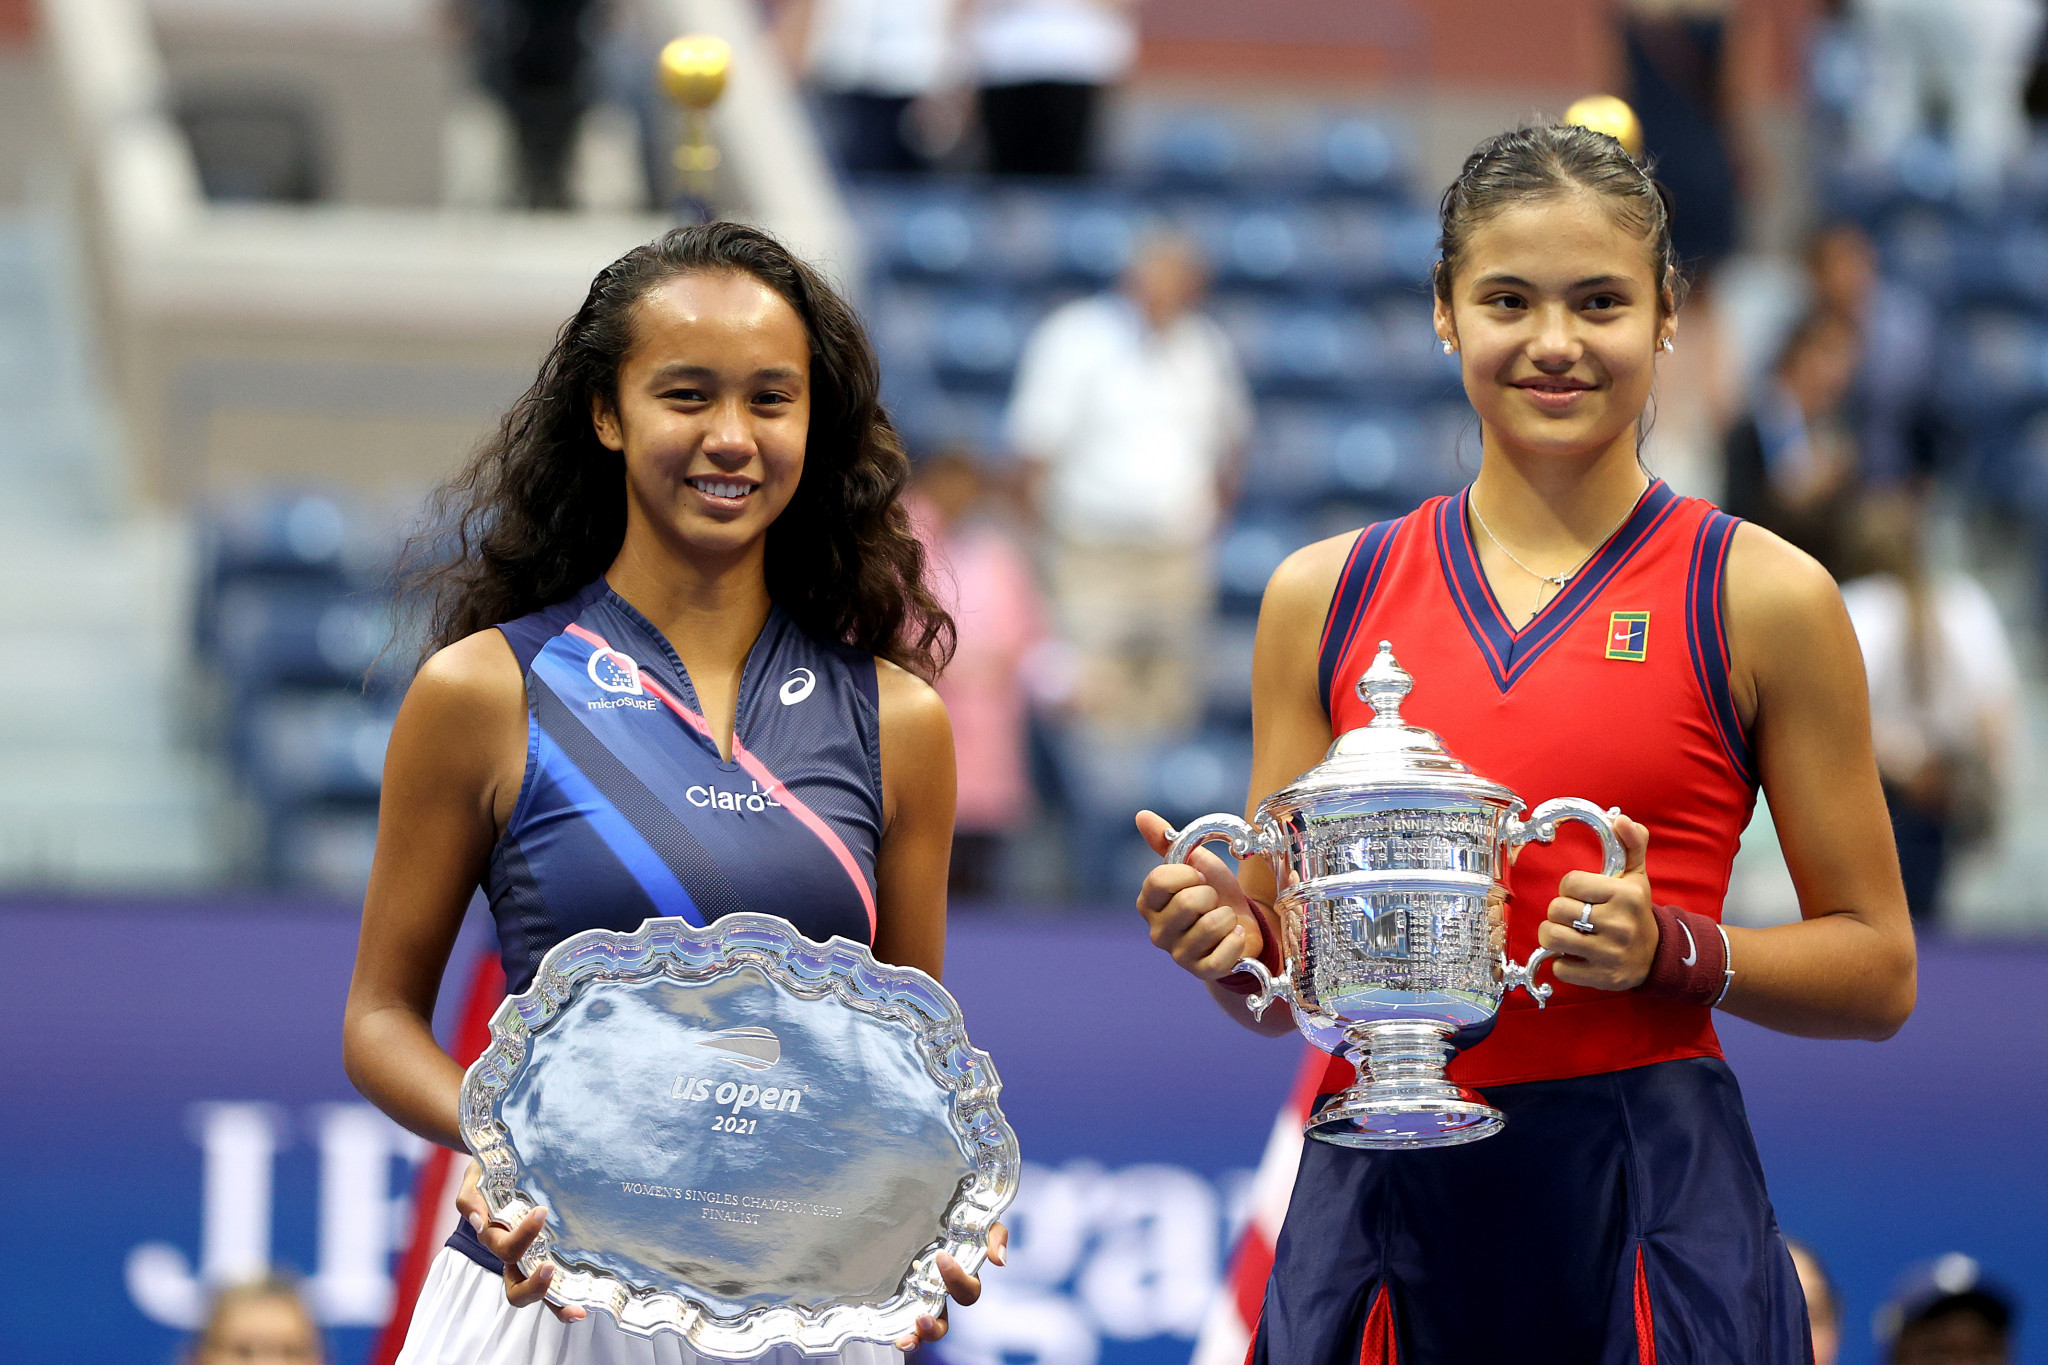 Emma Raducanu, right, defeated Leylah Fernandez in the US Open final, both teenage sensations displaying the complexities and delights of multi-national sports stars ©Getty Images